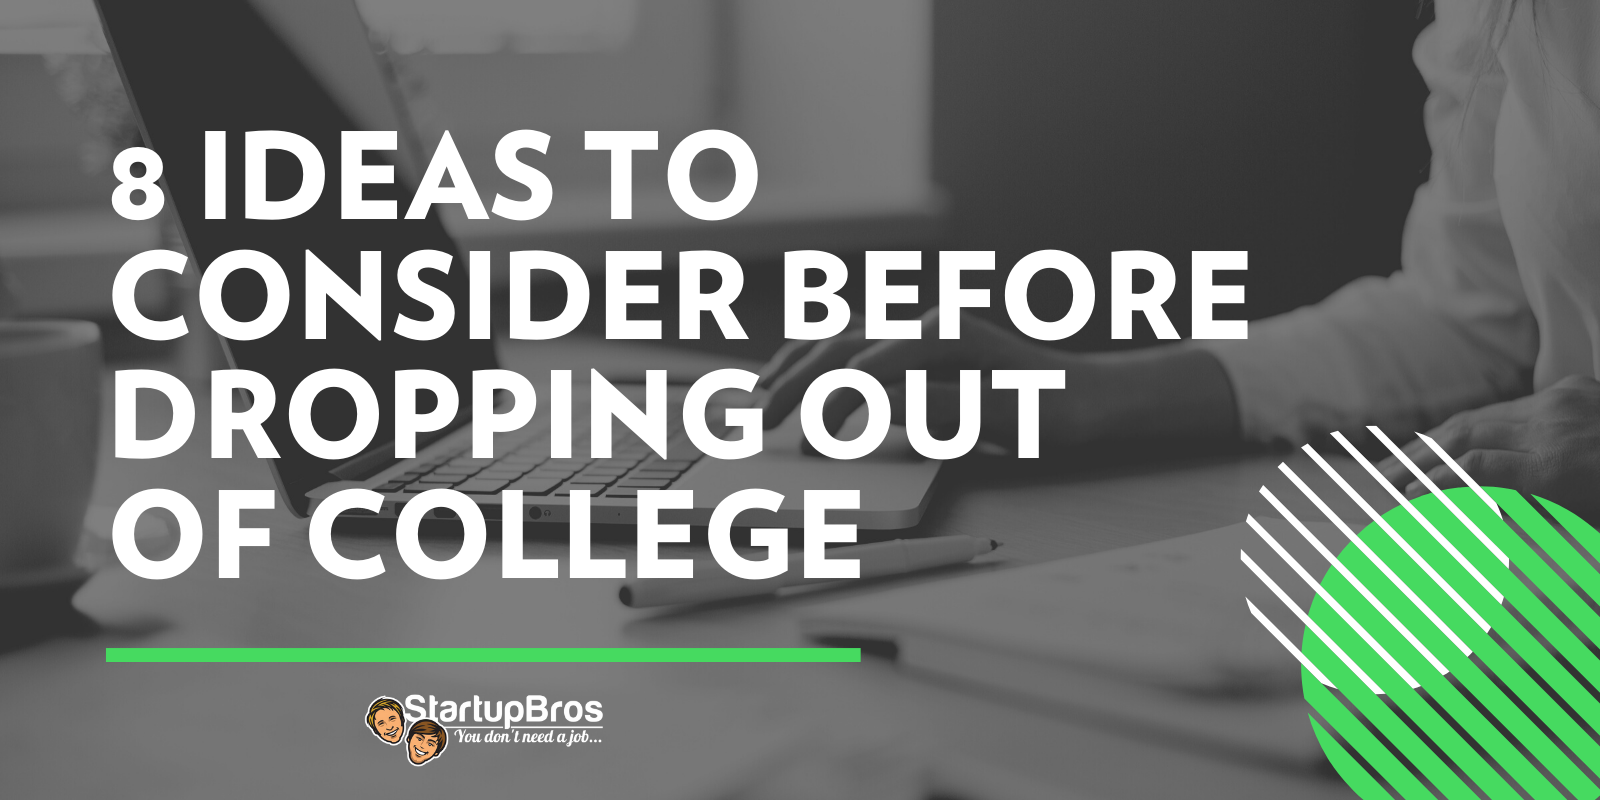 8 ideas to consider before dropping out of college - social image